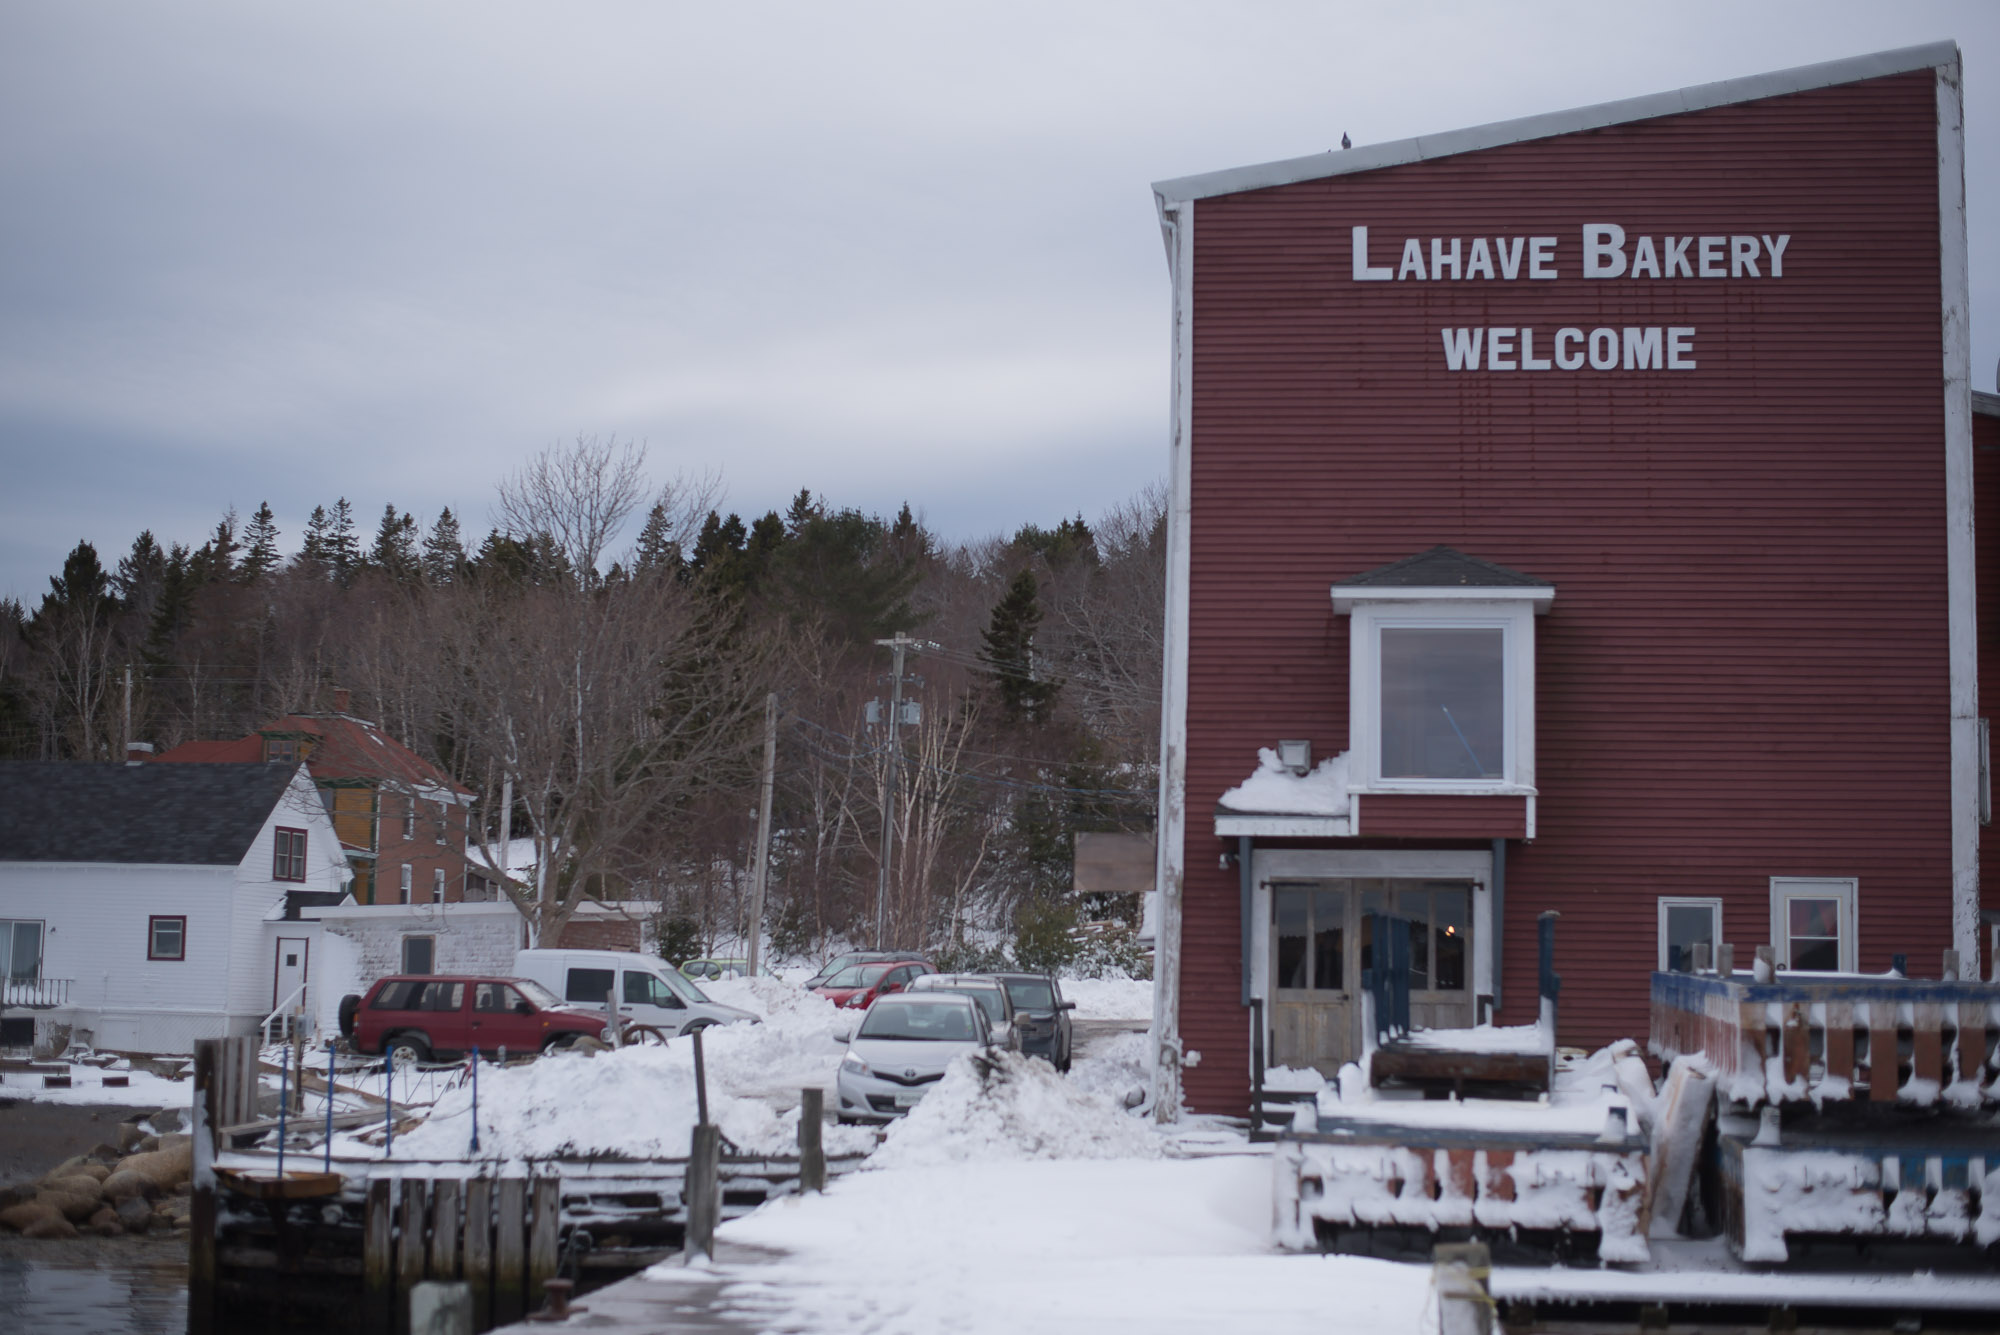 Our Family Day Long weekend trip to Lahave Bakery, Nova Scotia